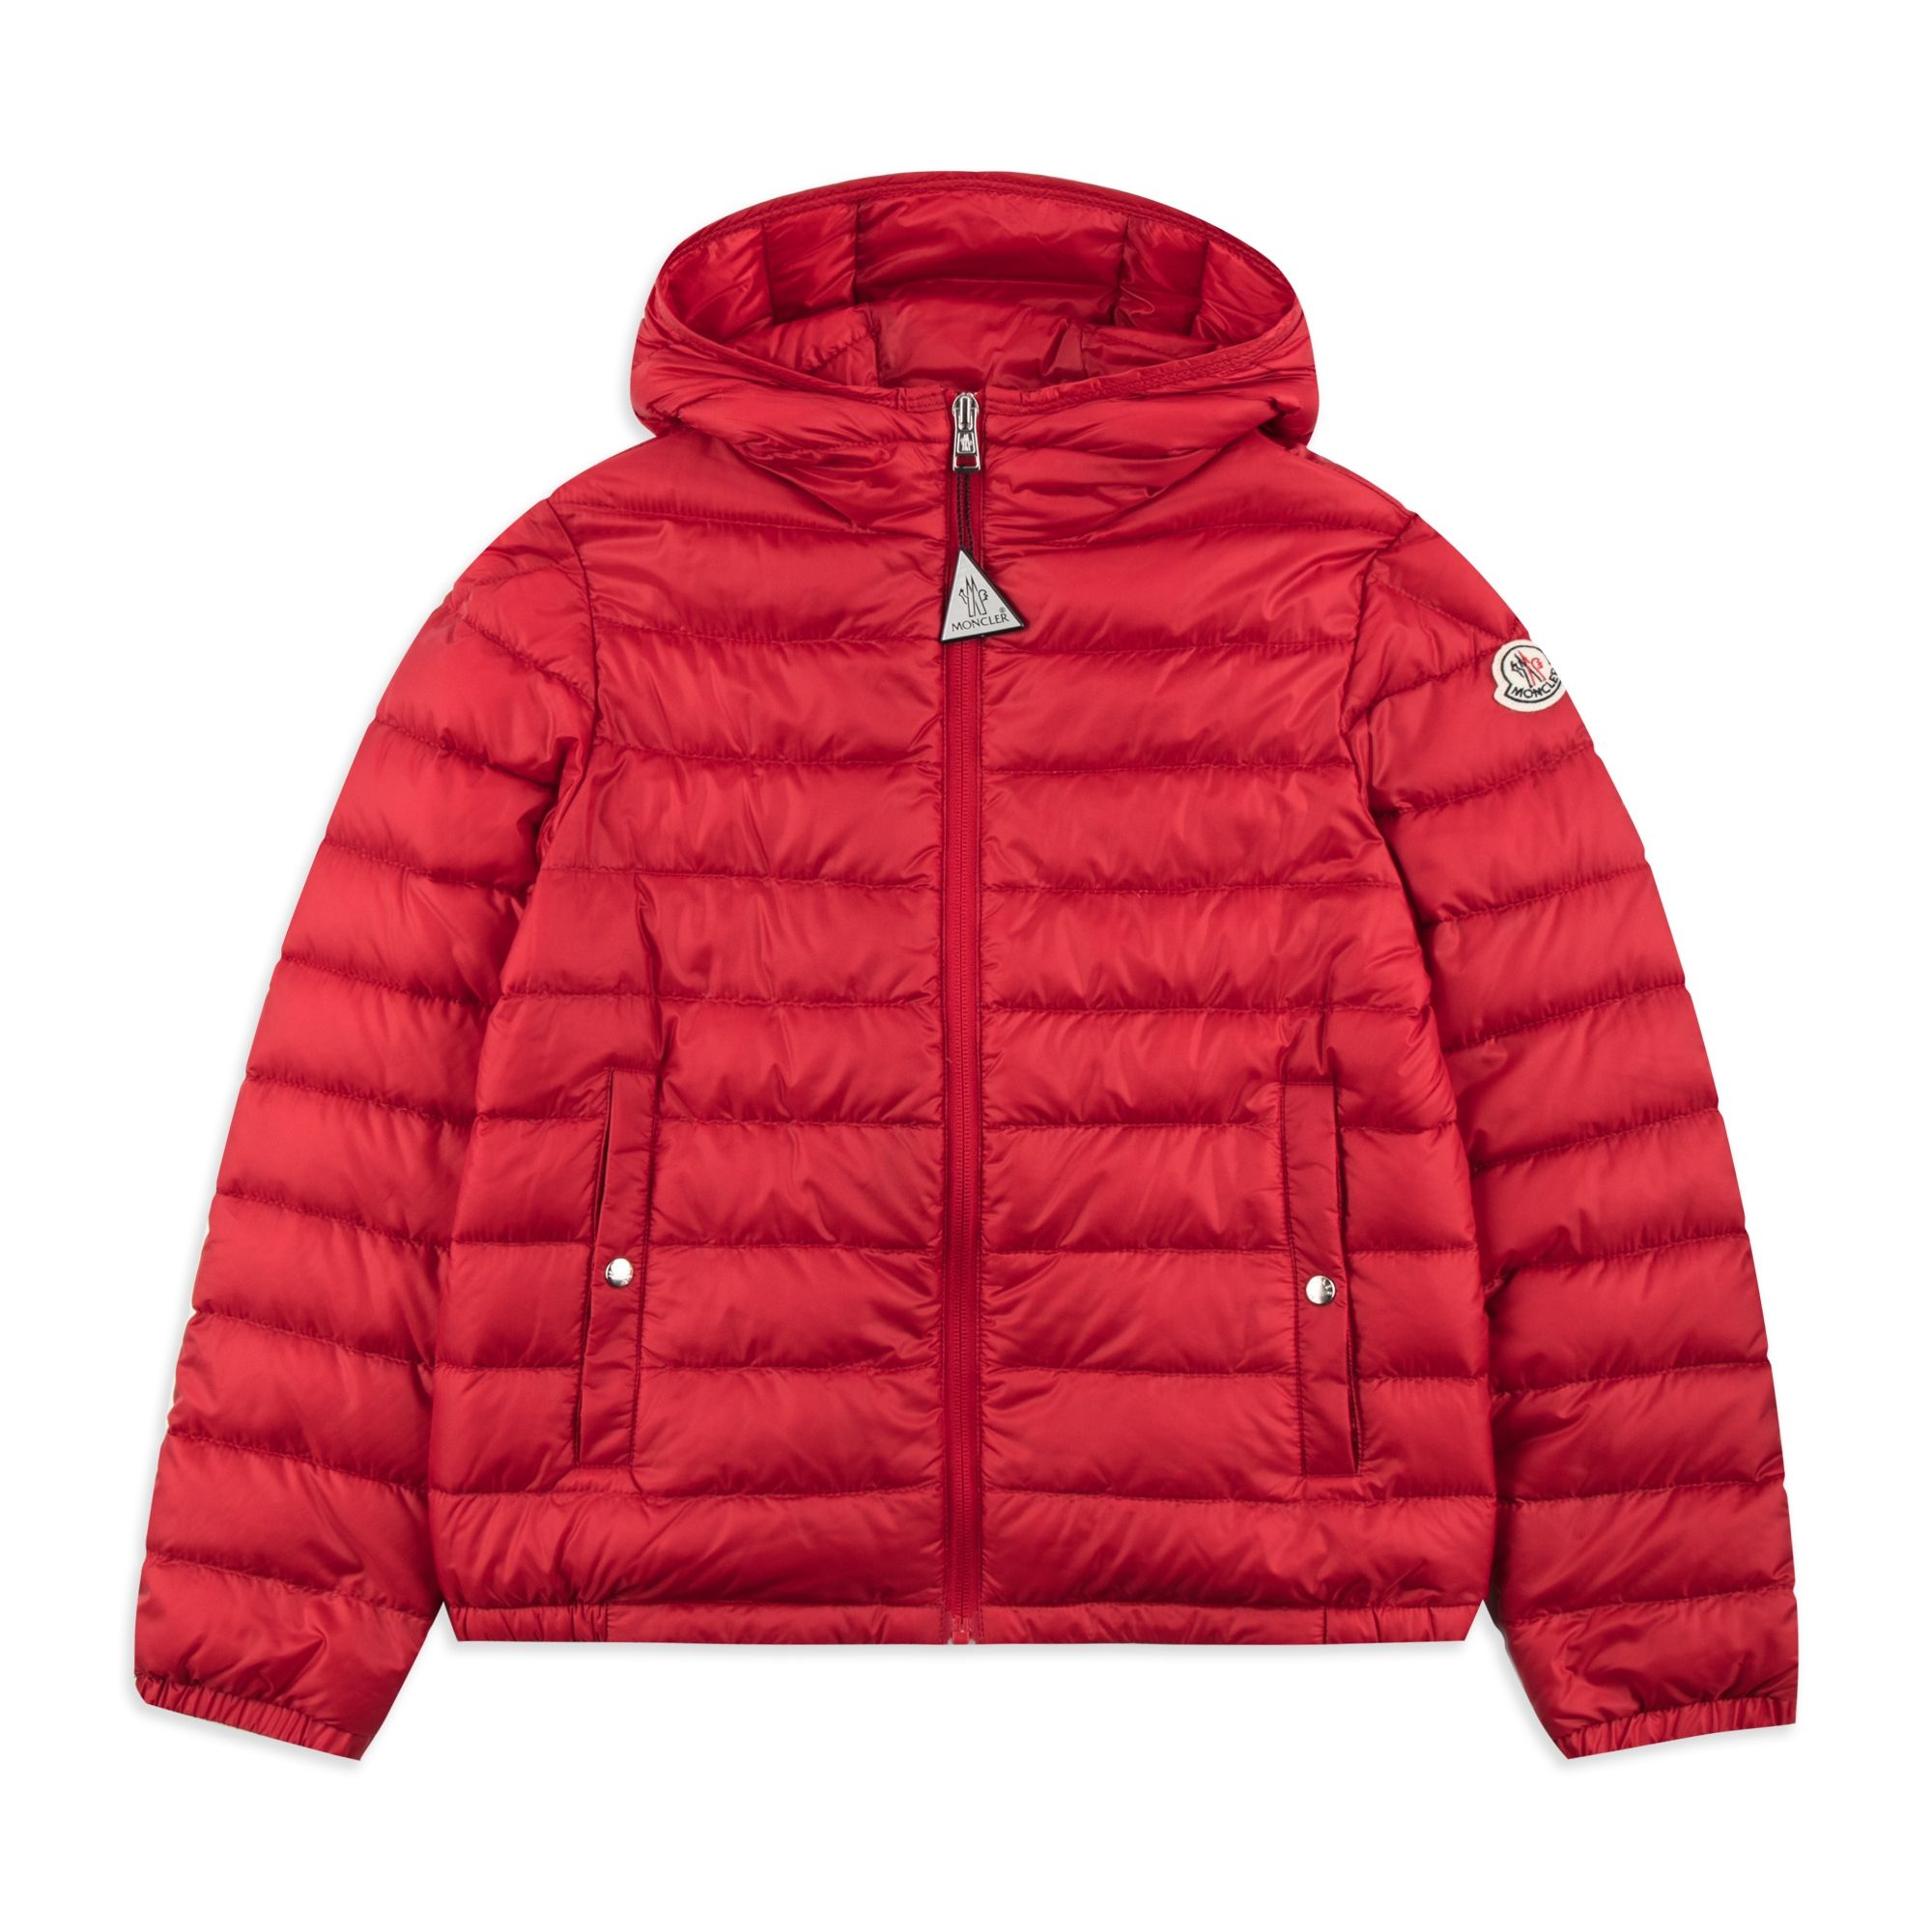 58c6d8fc3502 Boys  Morvan  Down Jacket - Red by Moncler